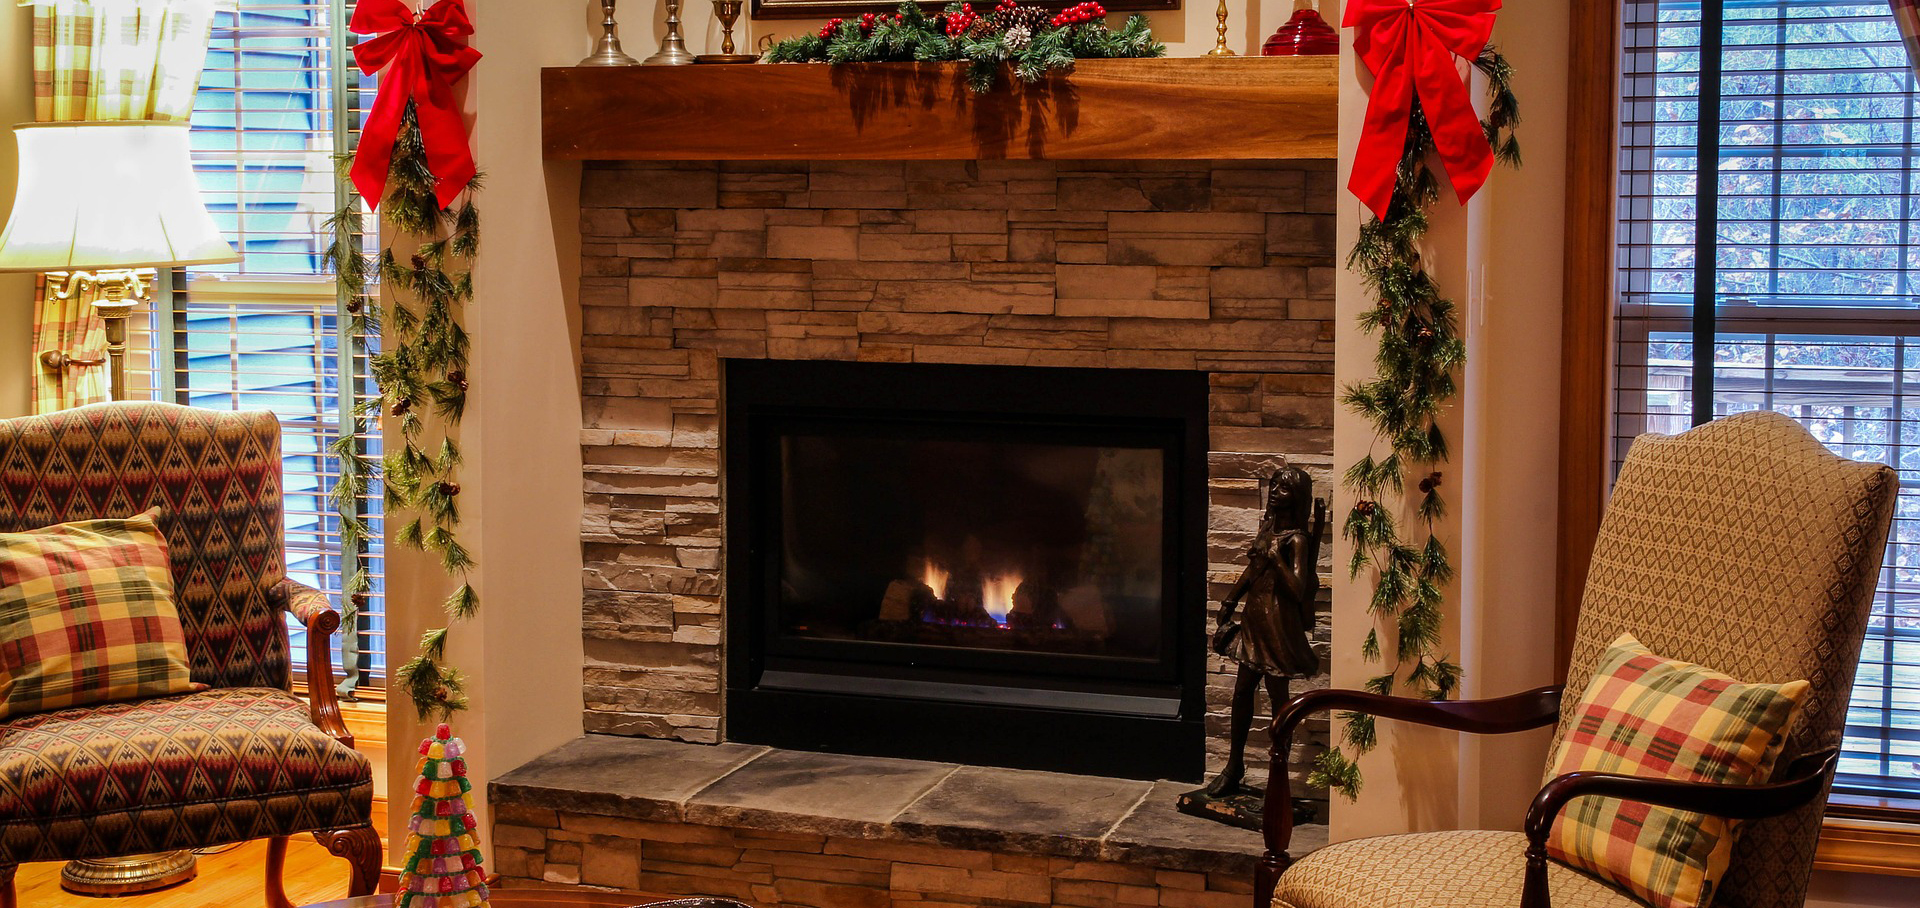 Wondrous The 6 Best Electric Fireplace Insert Of 2019 Buying Guide Download Free Architecture Designs Crovemadebymaigaardcom